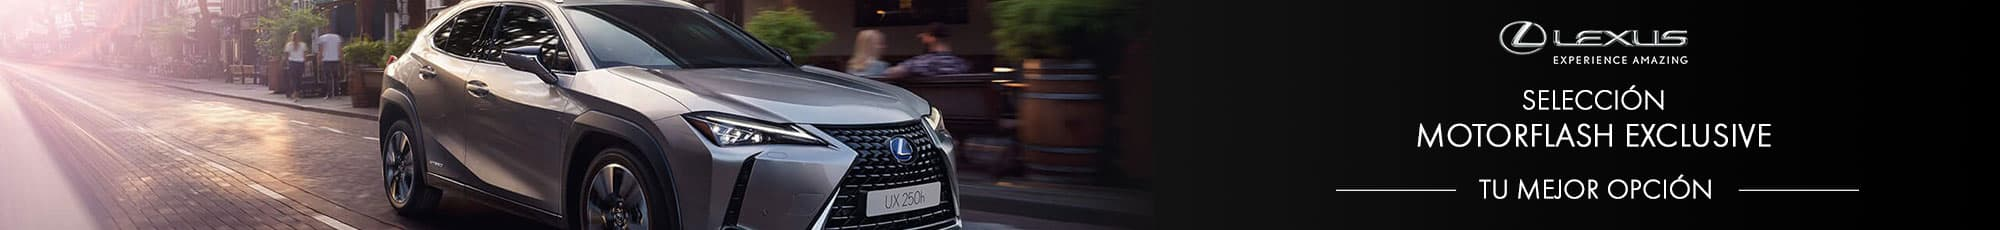 Motorflash exclusive de la marca Lexus